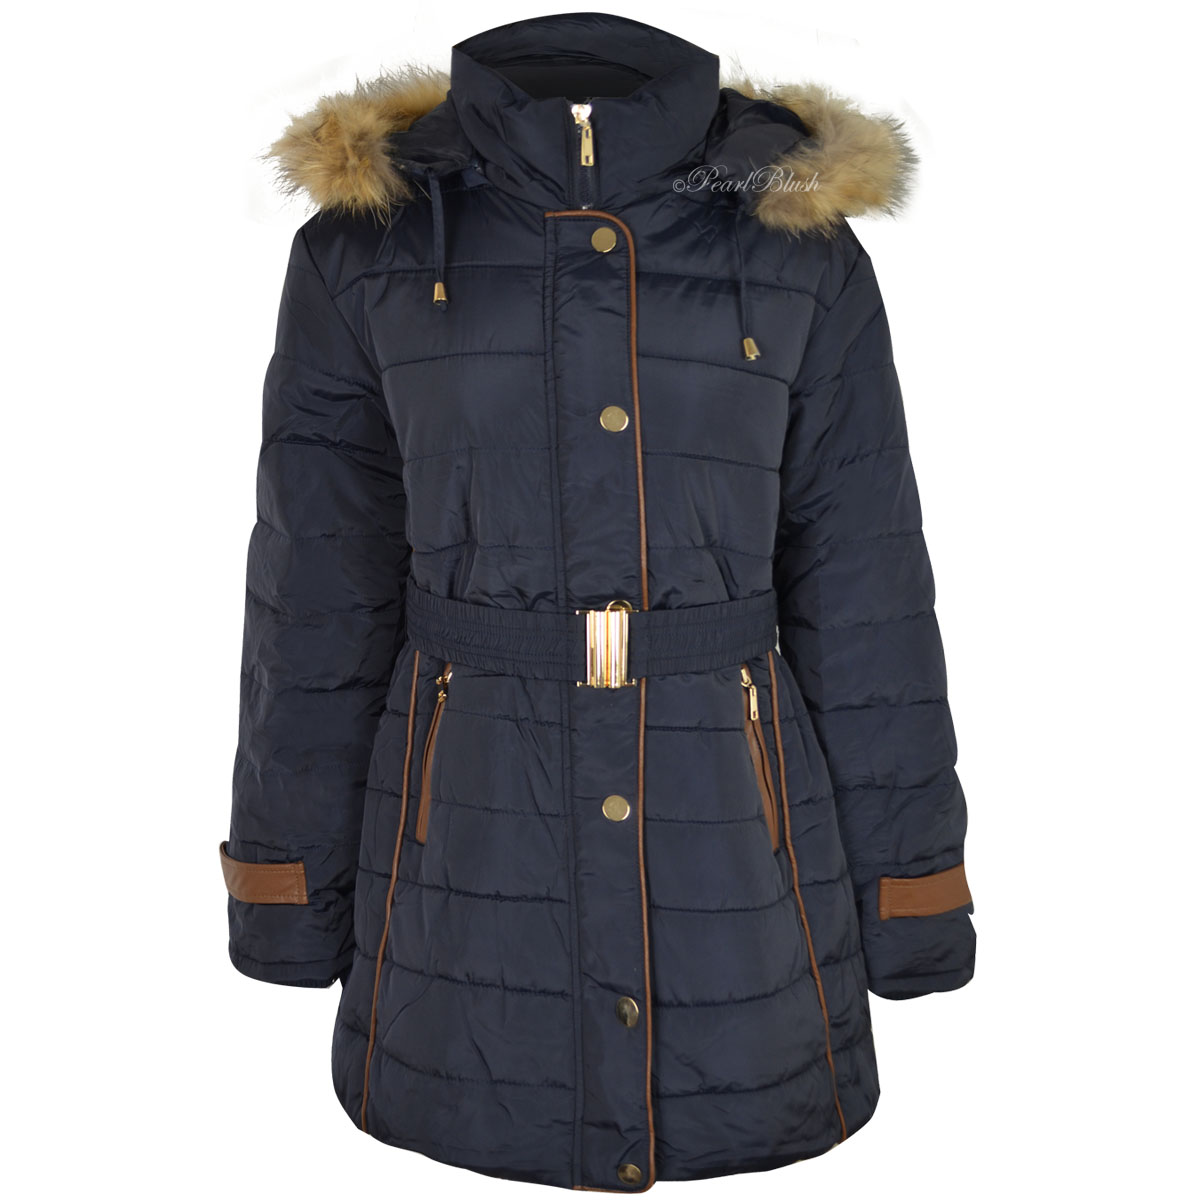 Enjoy free shipping and easy returns every day at Kohl's. Find great deals on Womens Puffer Coats & Quilted Jackets at Kohl's today!